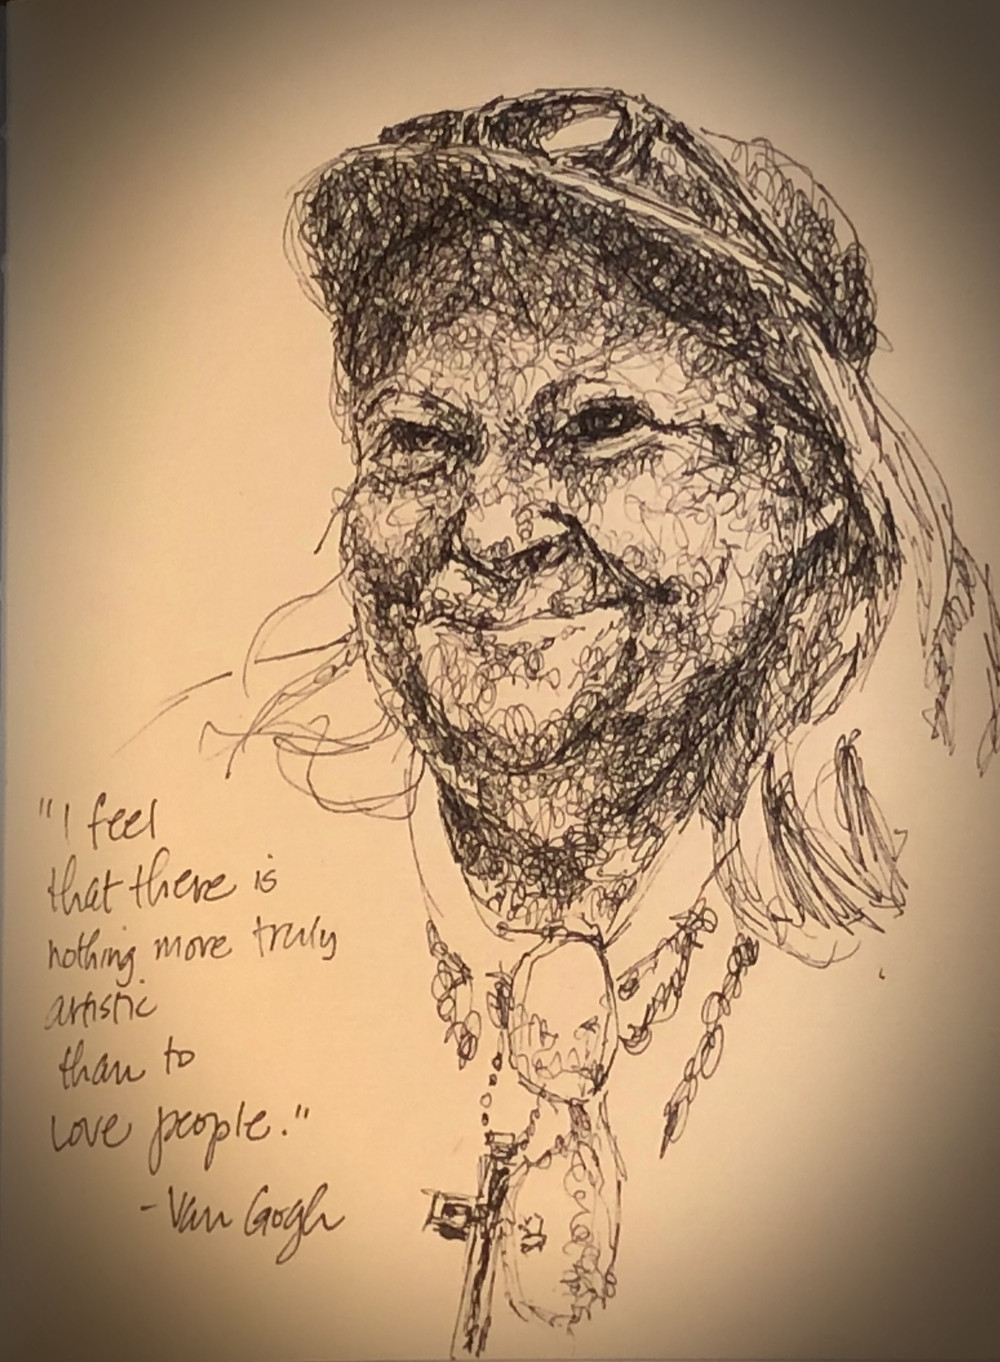 Pen and ink portrait of an elderly woman wearing a ball cap and a cross necklace.